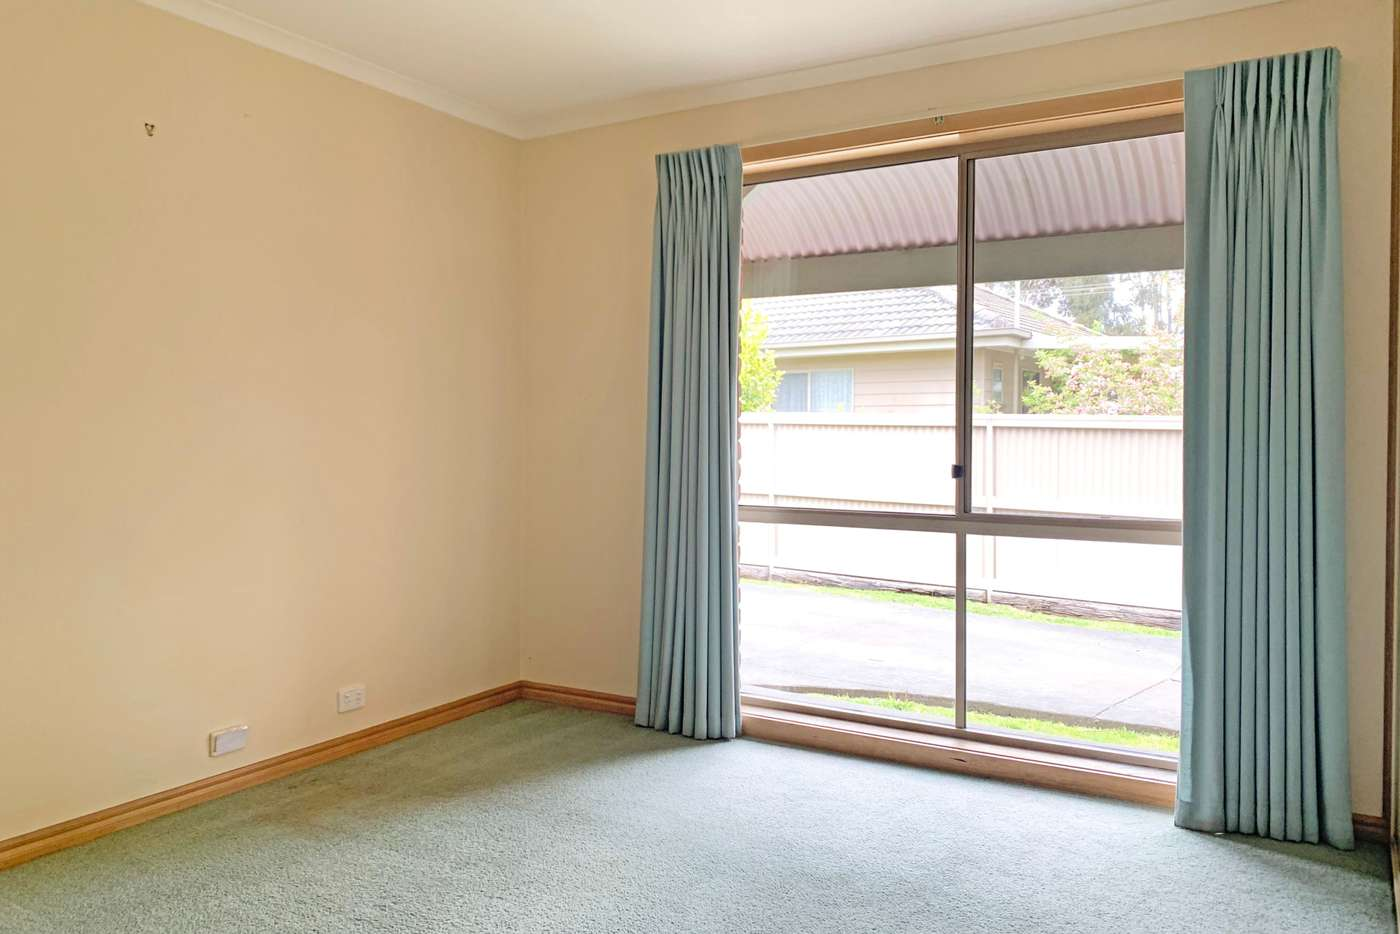 Sixth view of Homely house listing, 33 Recreation Road, Mount Clear VIC 3350